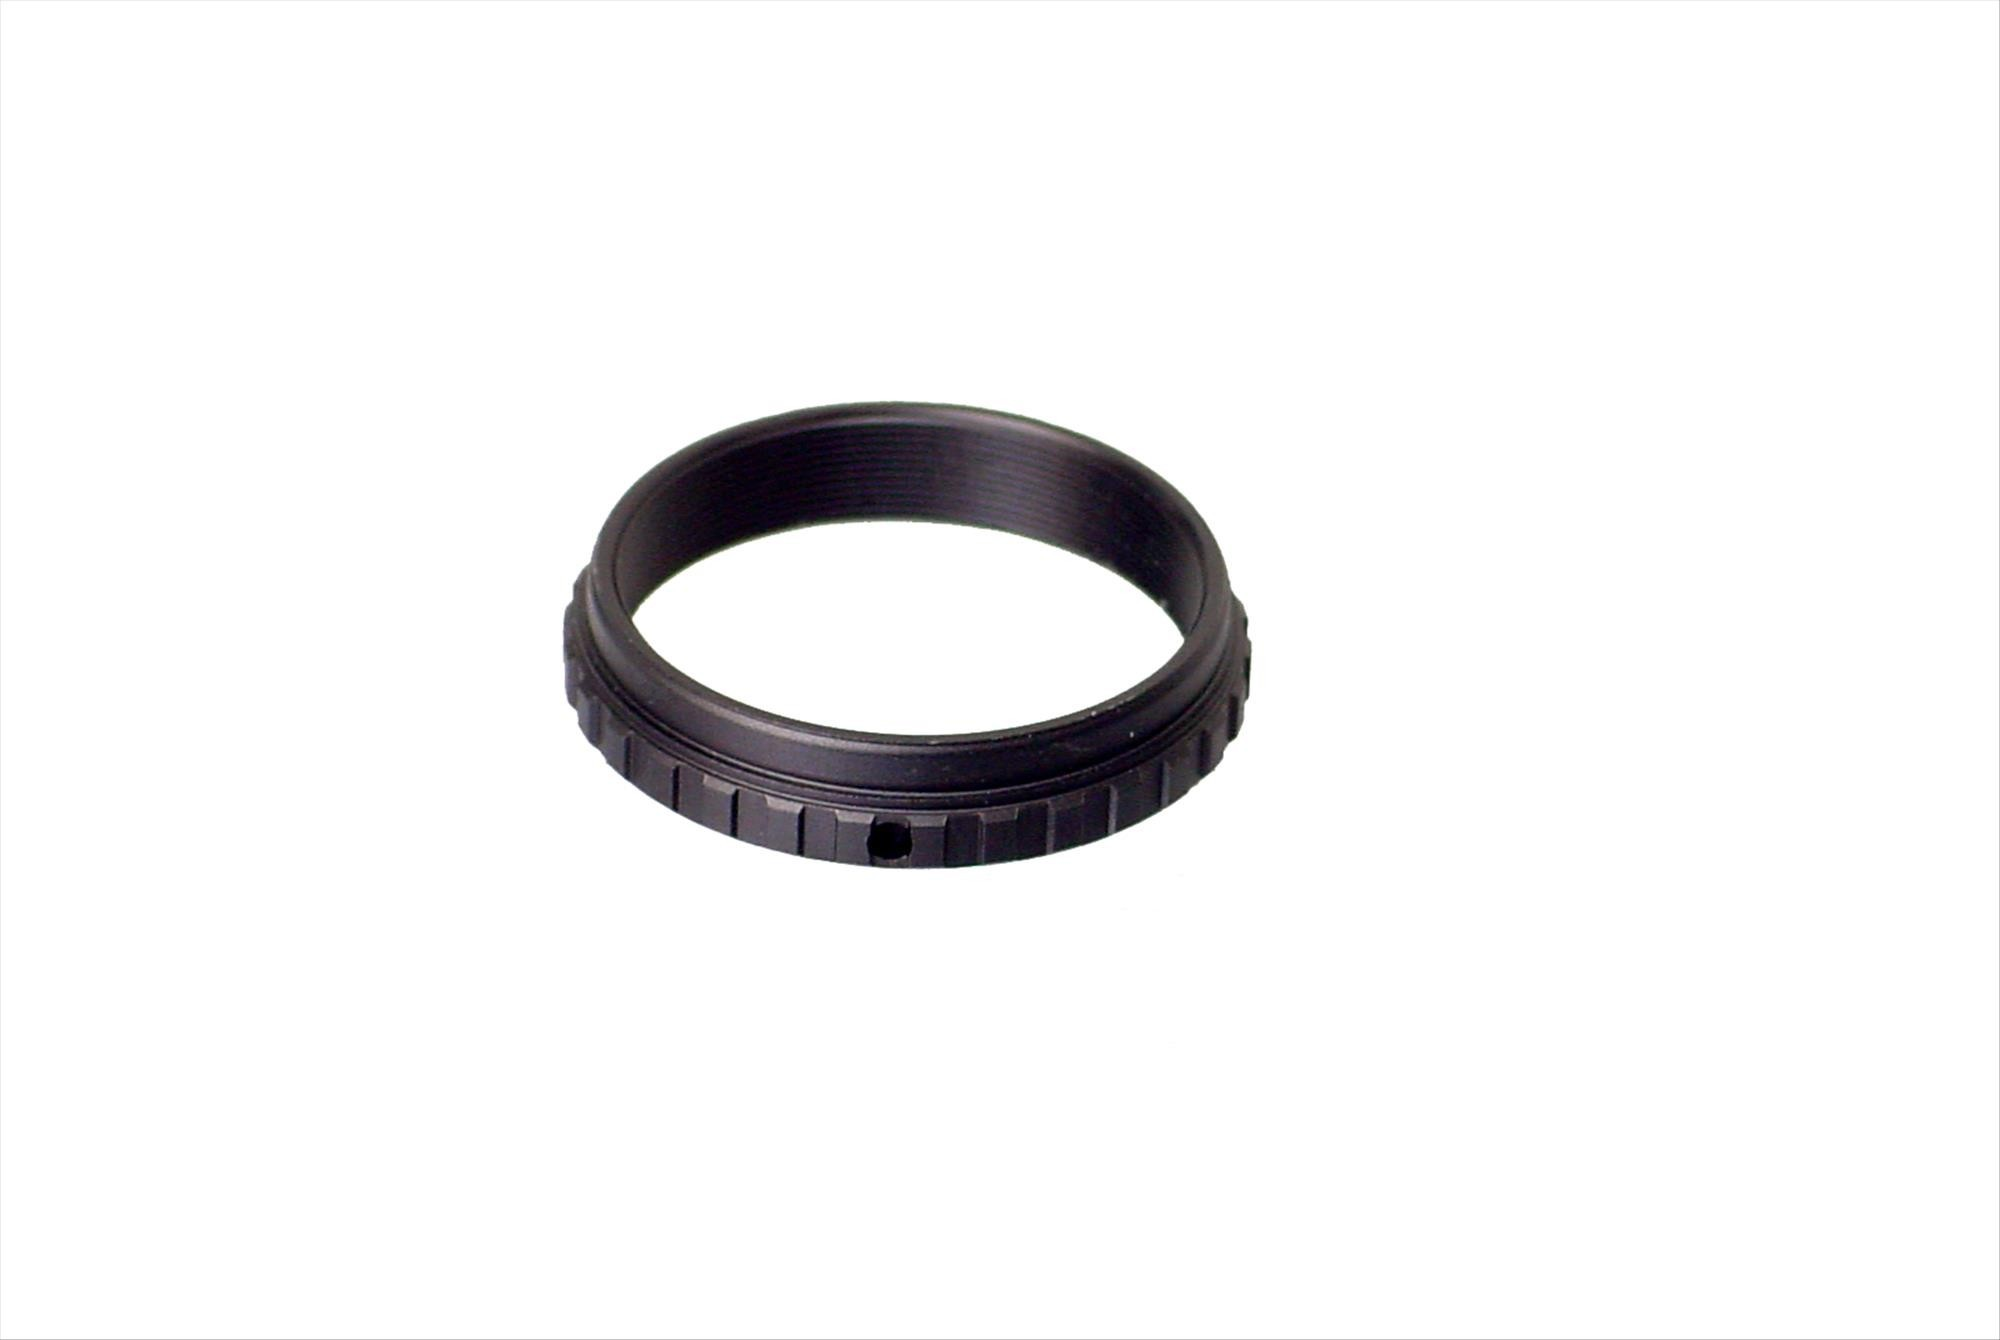 T-2 Conversion Ring (10mm long), converts T-2 male into T-2 female thread